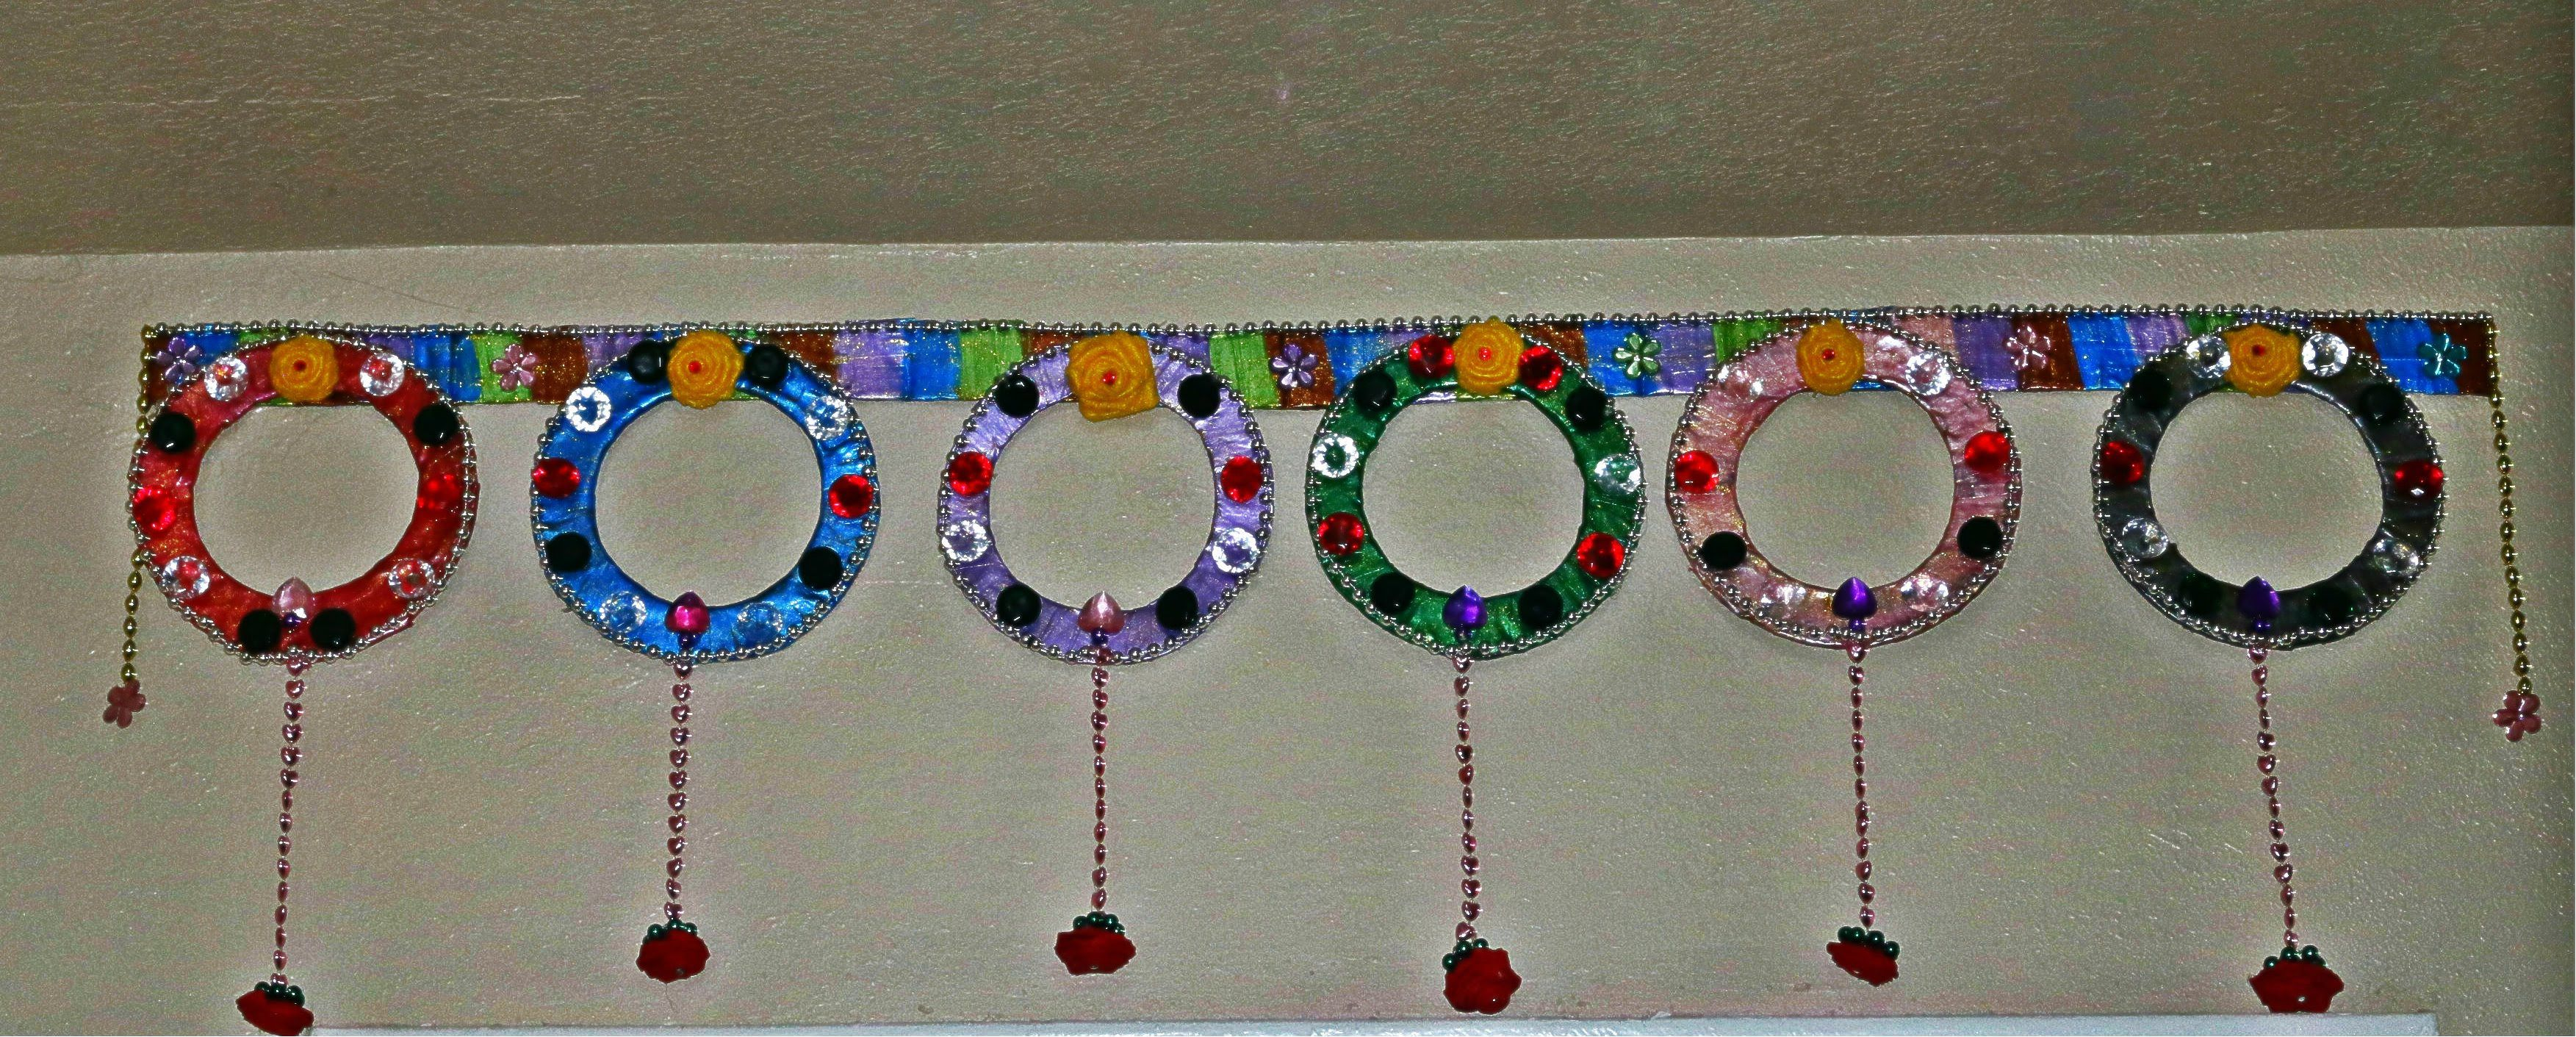 Merveilleux Recycled: Toran Door Hanging With Waste Cardboard   DIY Home Decor Hanging  Beads, Diwali